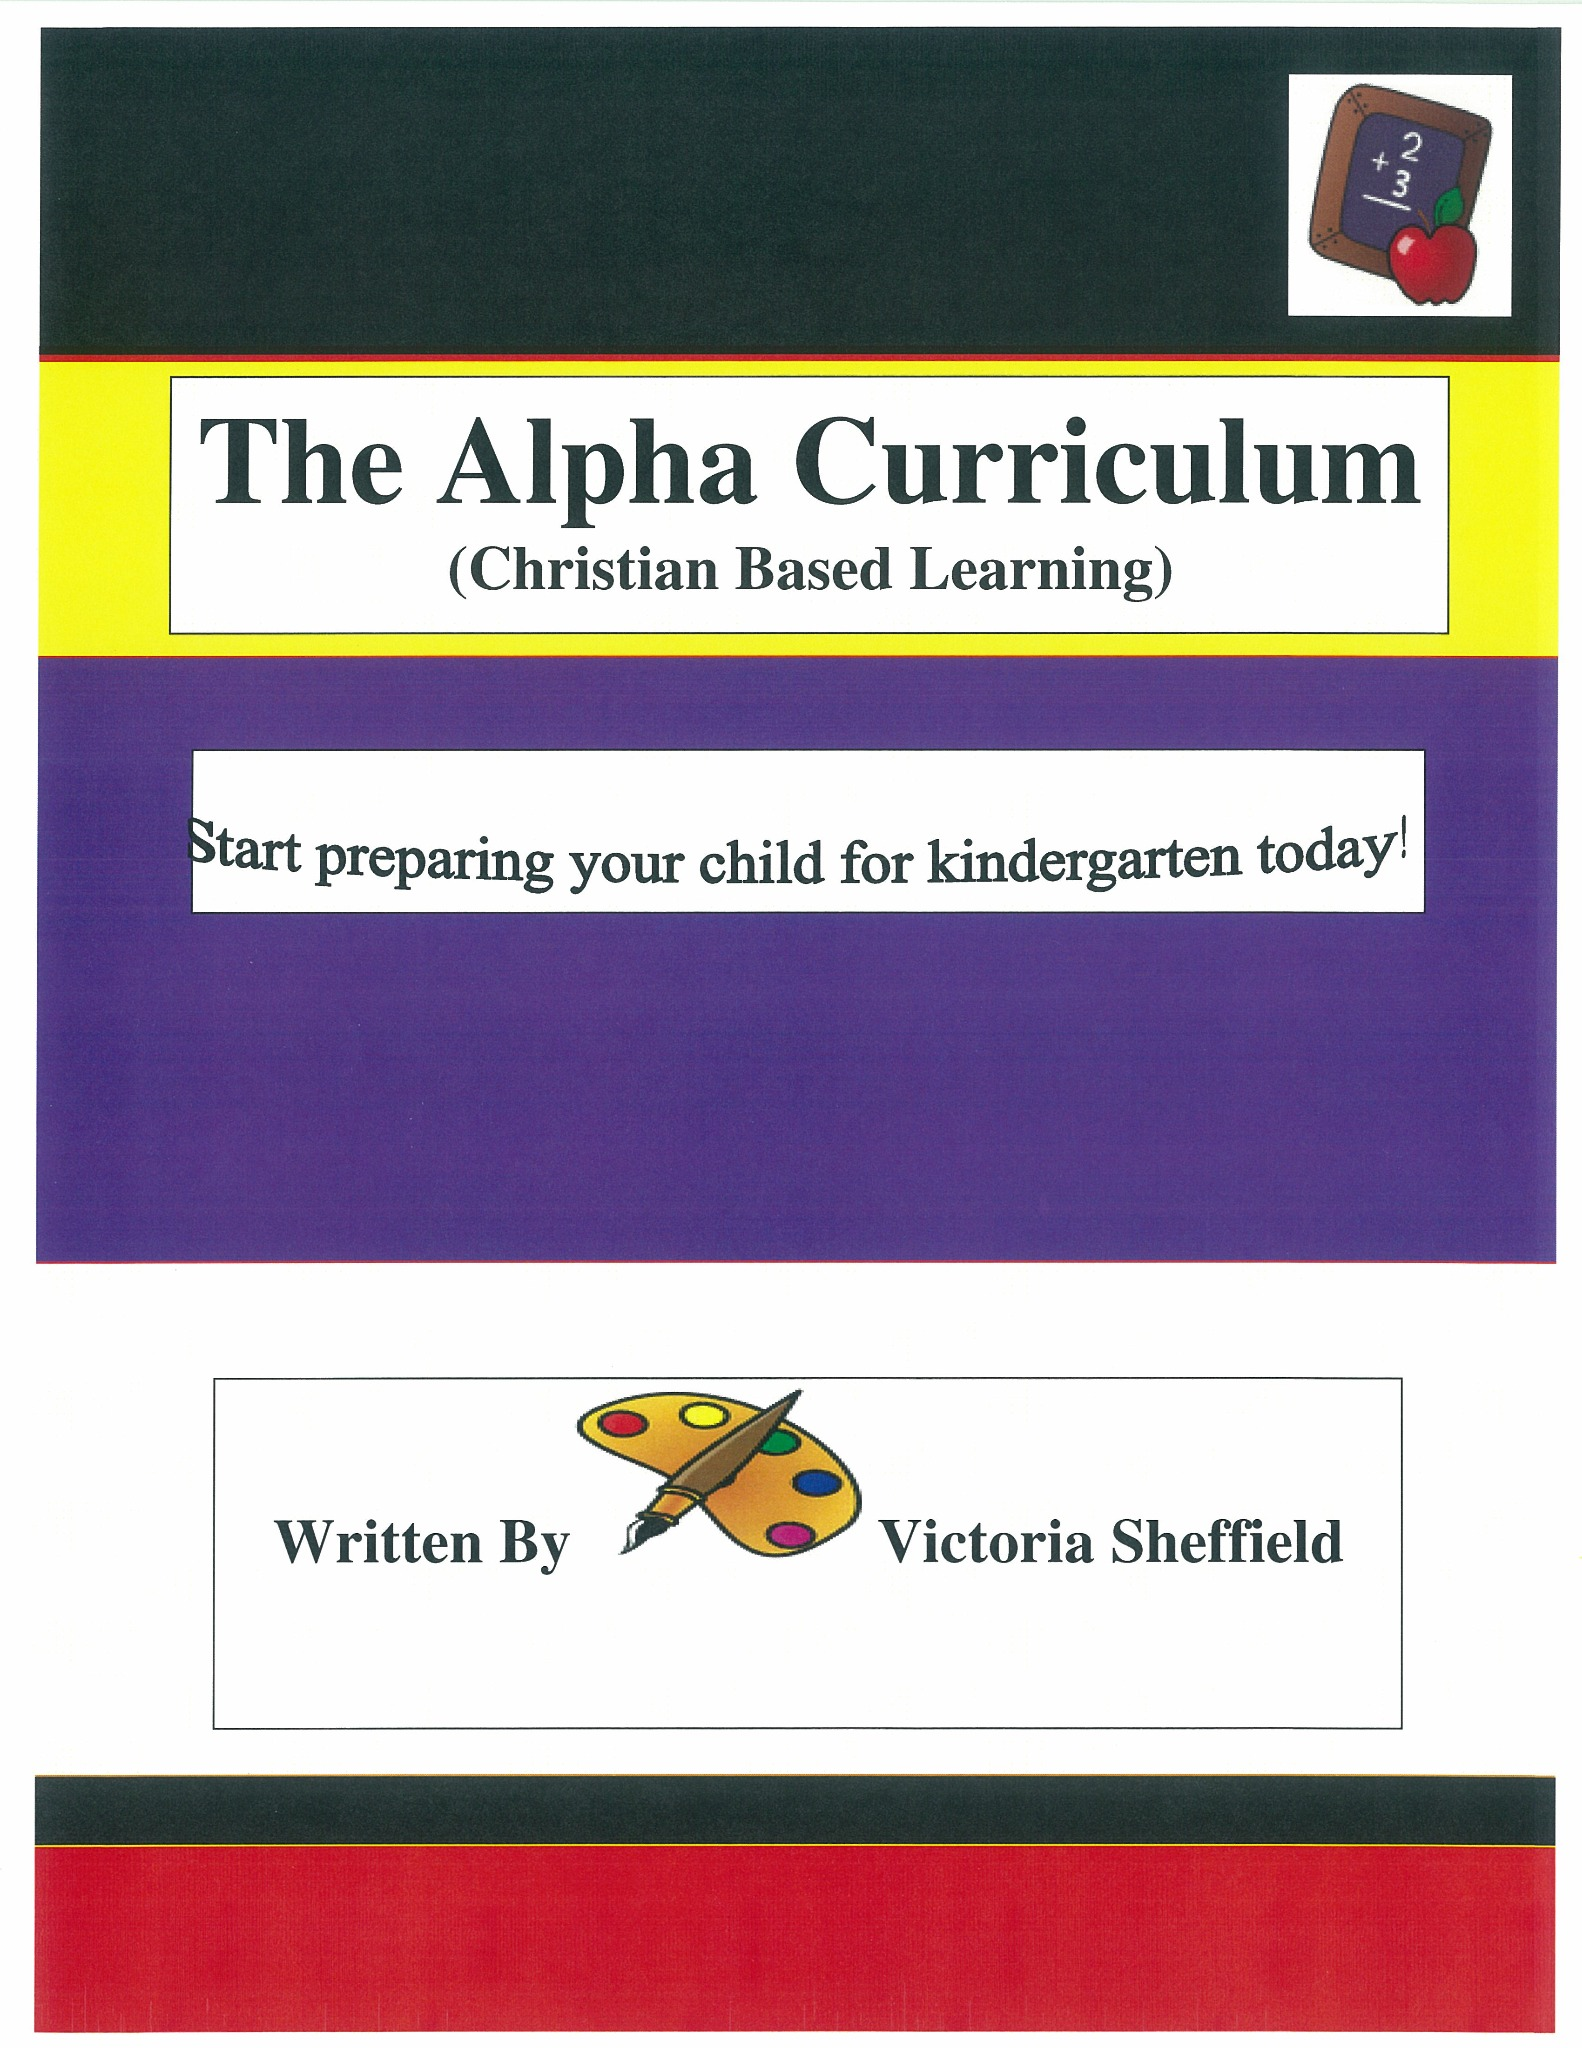 The Alpha Curriculum